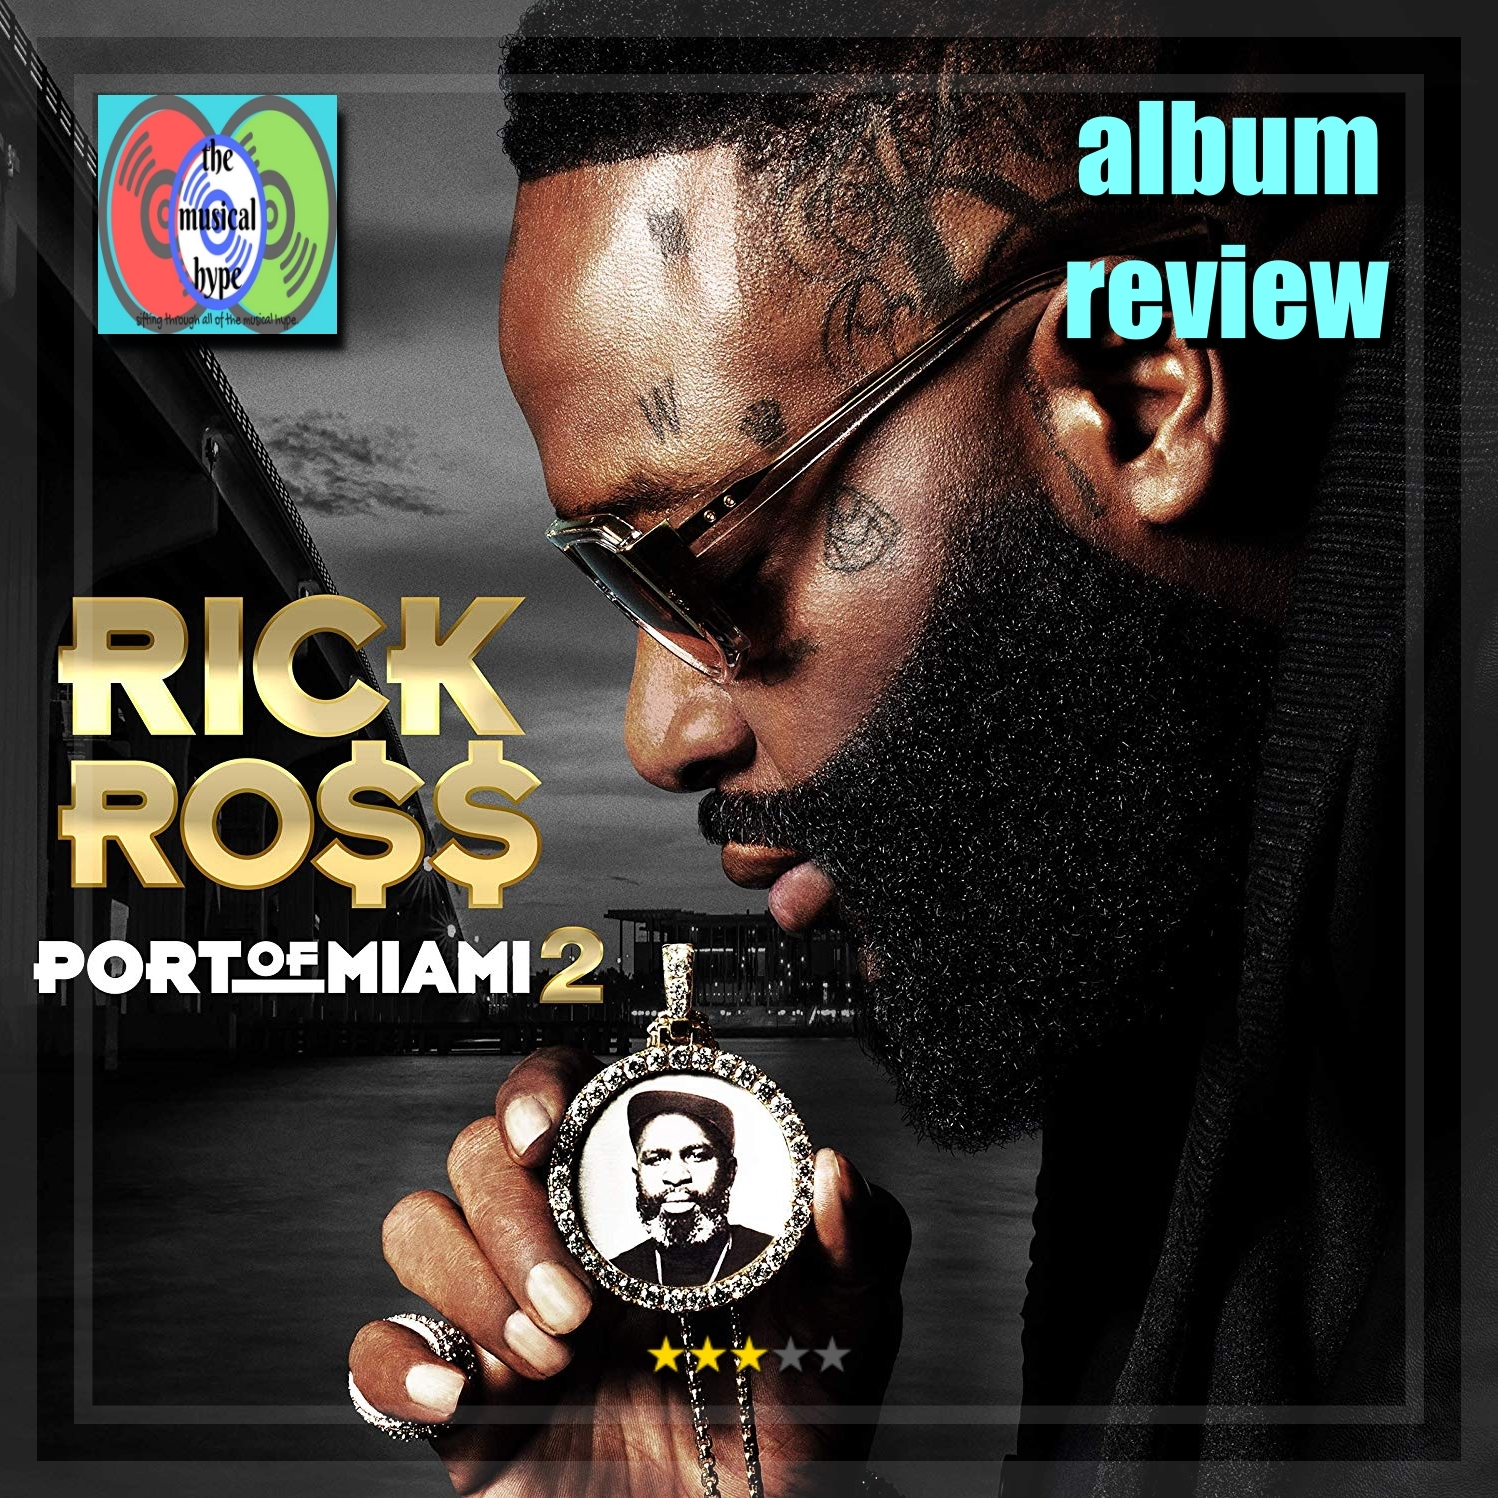 Rick Ross, Port of Miami 2 | Album Review